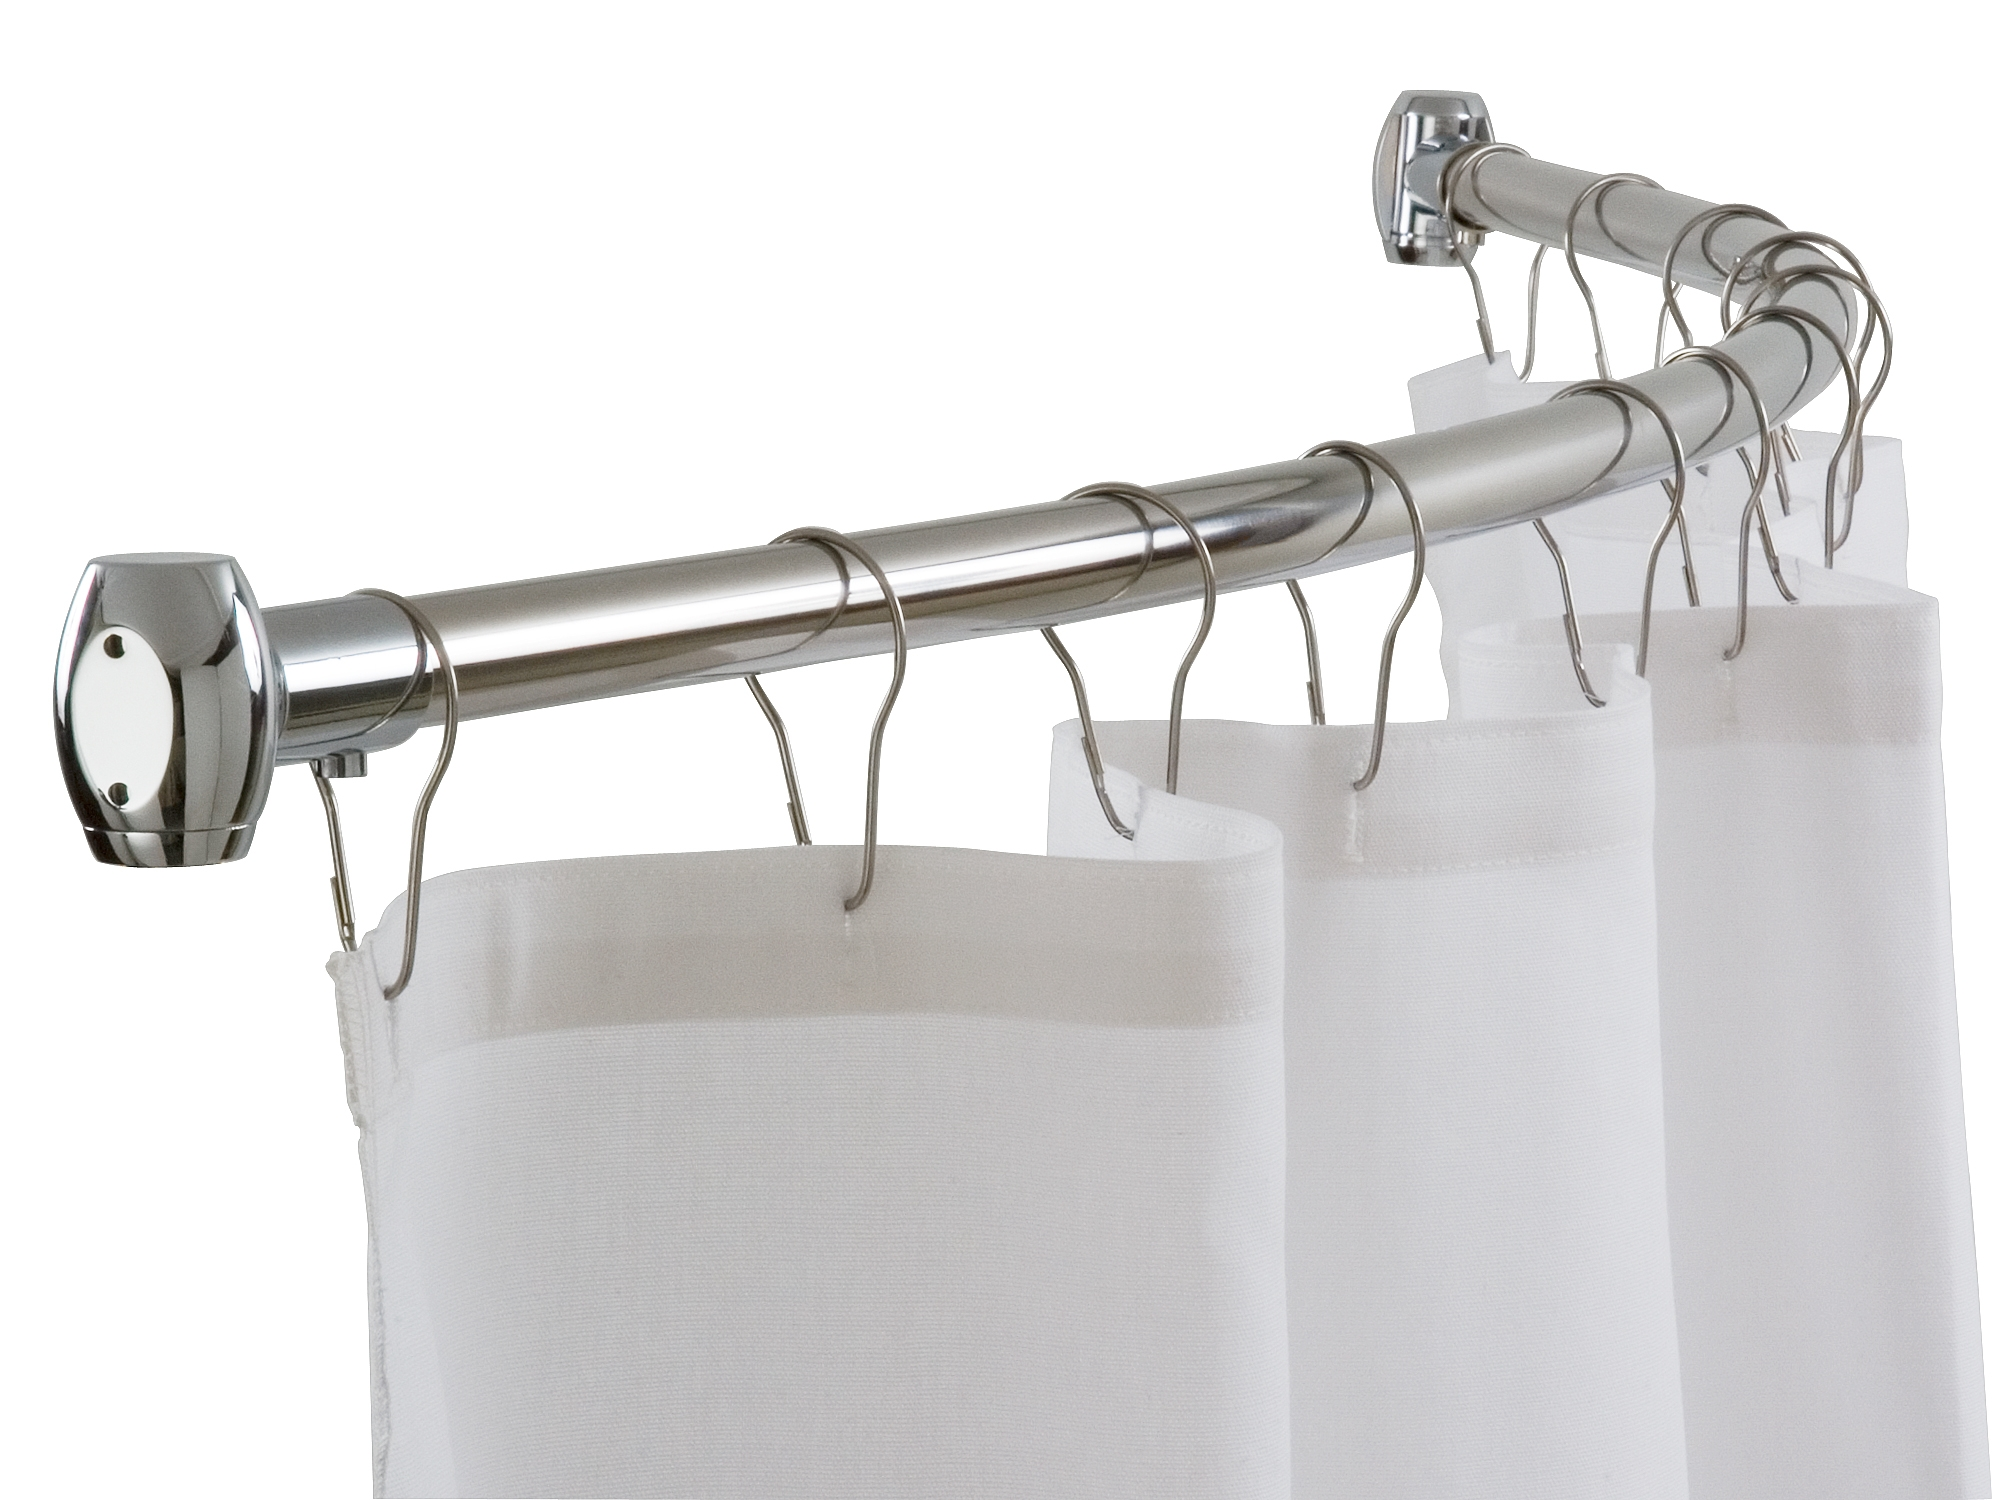 Unique Shower Curtain Rods Bradley 9530 7278 Curved Shower Rod 72